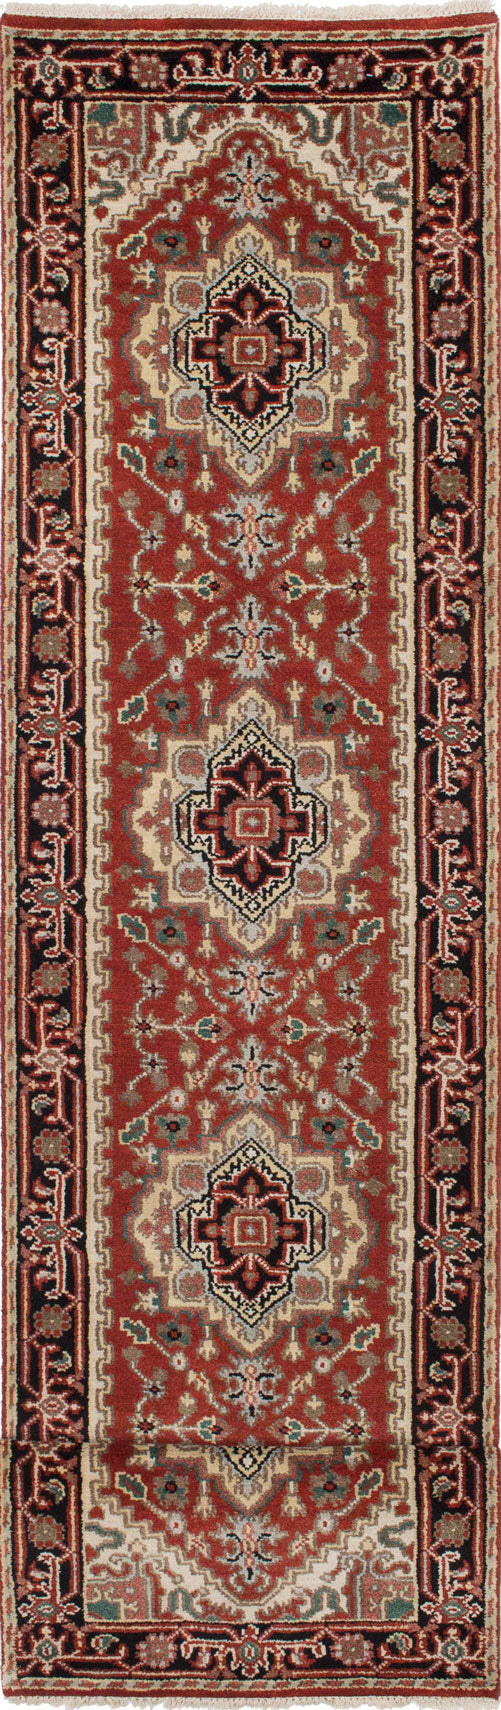 "Hand-knotted Indian Traditional Serapi-Heritage Runner rug  Dark Orange 2'6 x 15'7"" """